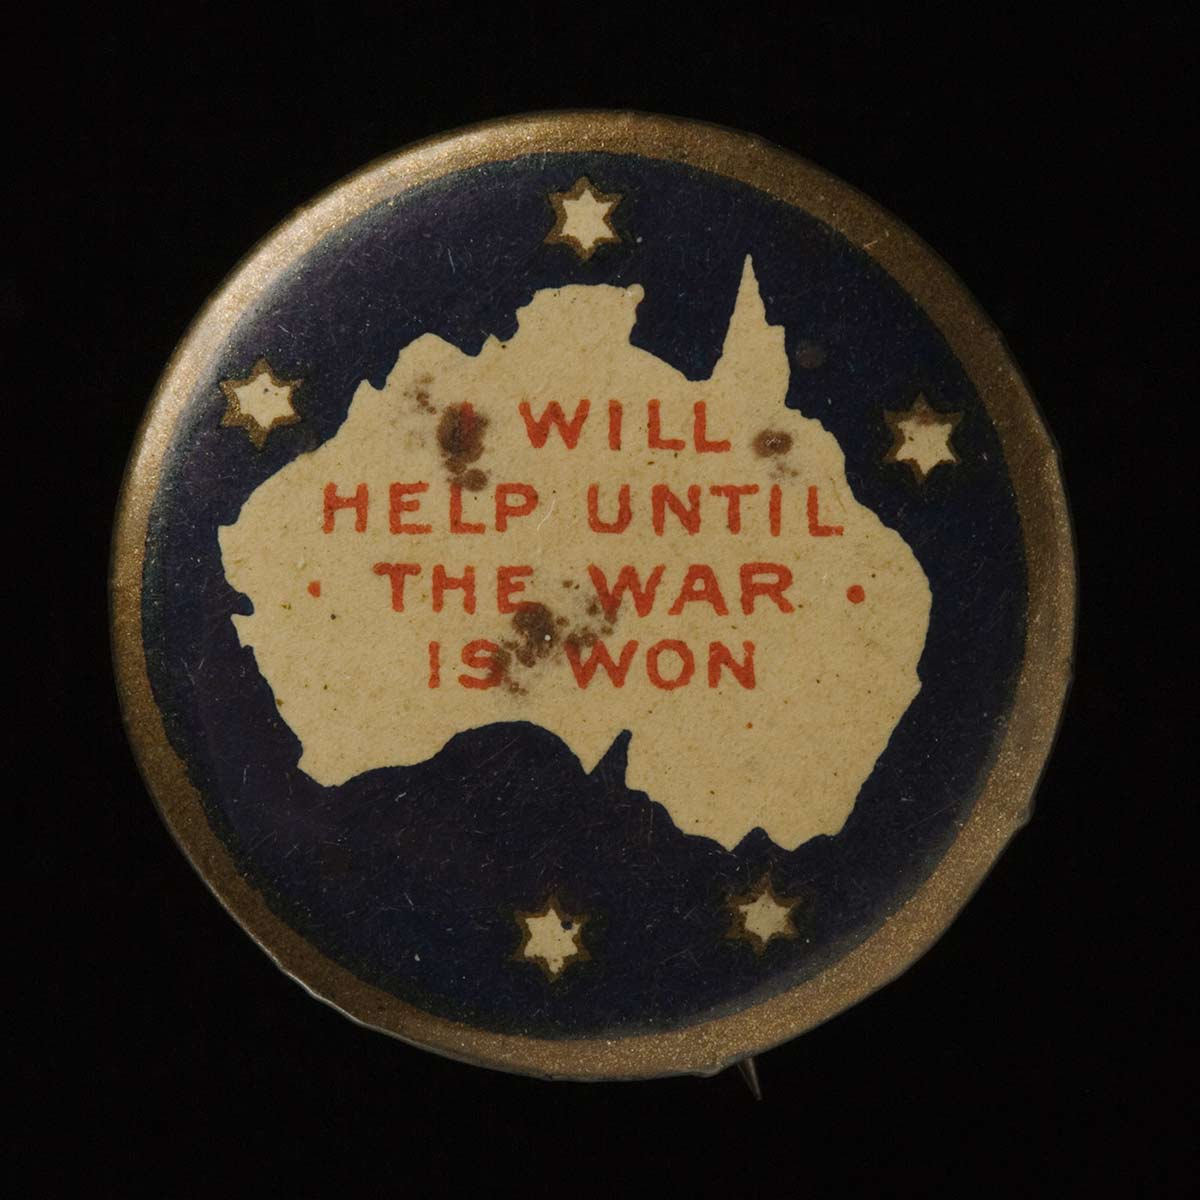 Badge featuring a map of Australia and the Southern Cross. The text on the badge reads 'I WILL HELP UNTIL THE WAR IS WON'. - click to view larger image